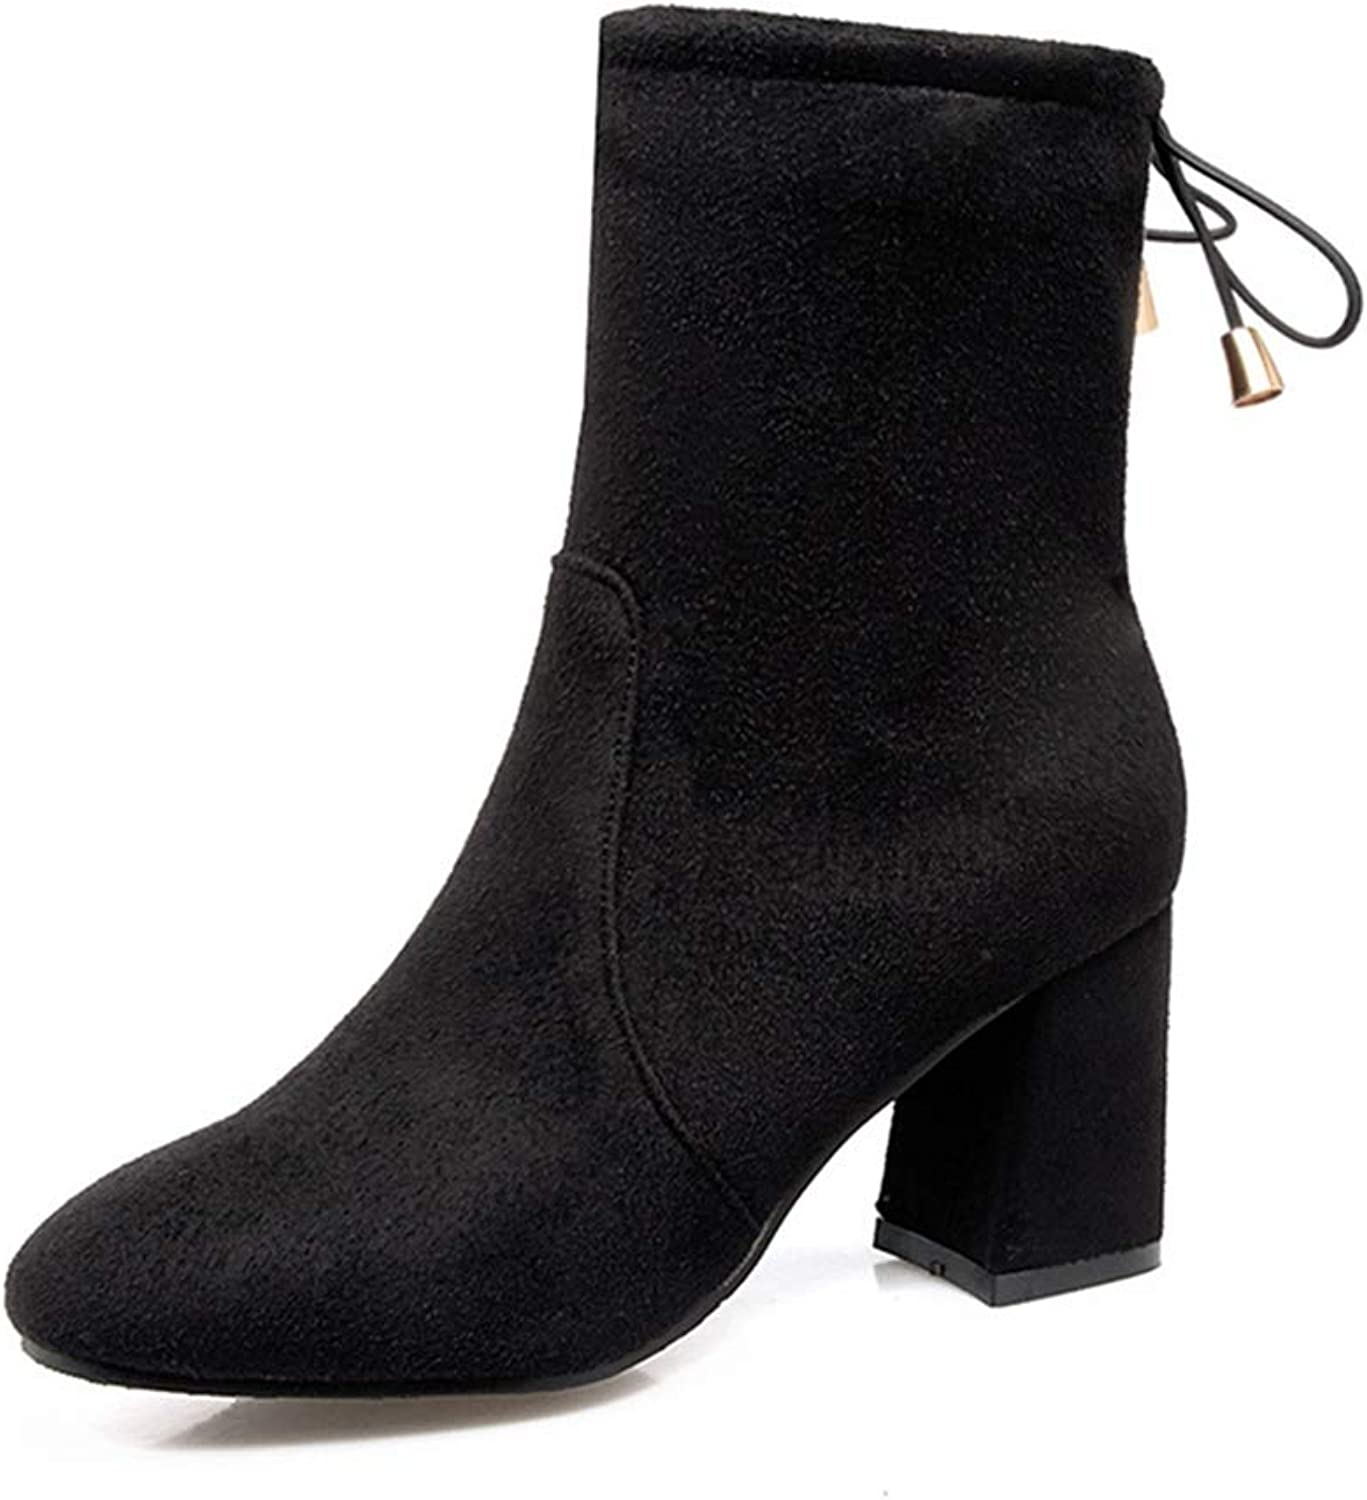 GIY Women's Stretch Suede Ankle Boots Vegan Round Toe Chunky High Heel Lace Up Elastic Dressy Short Bootie